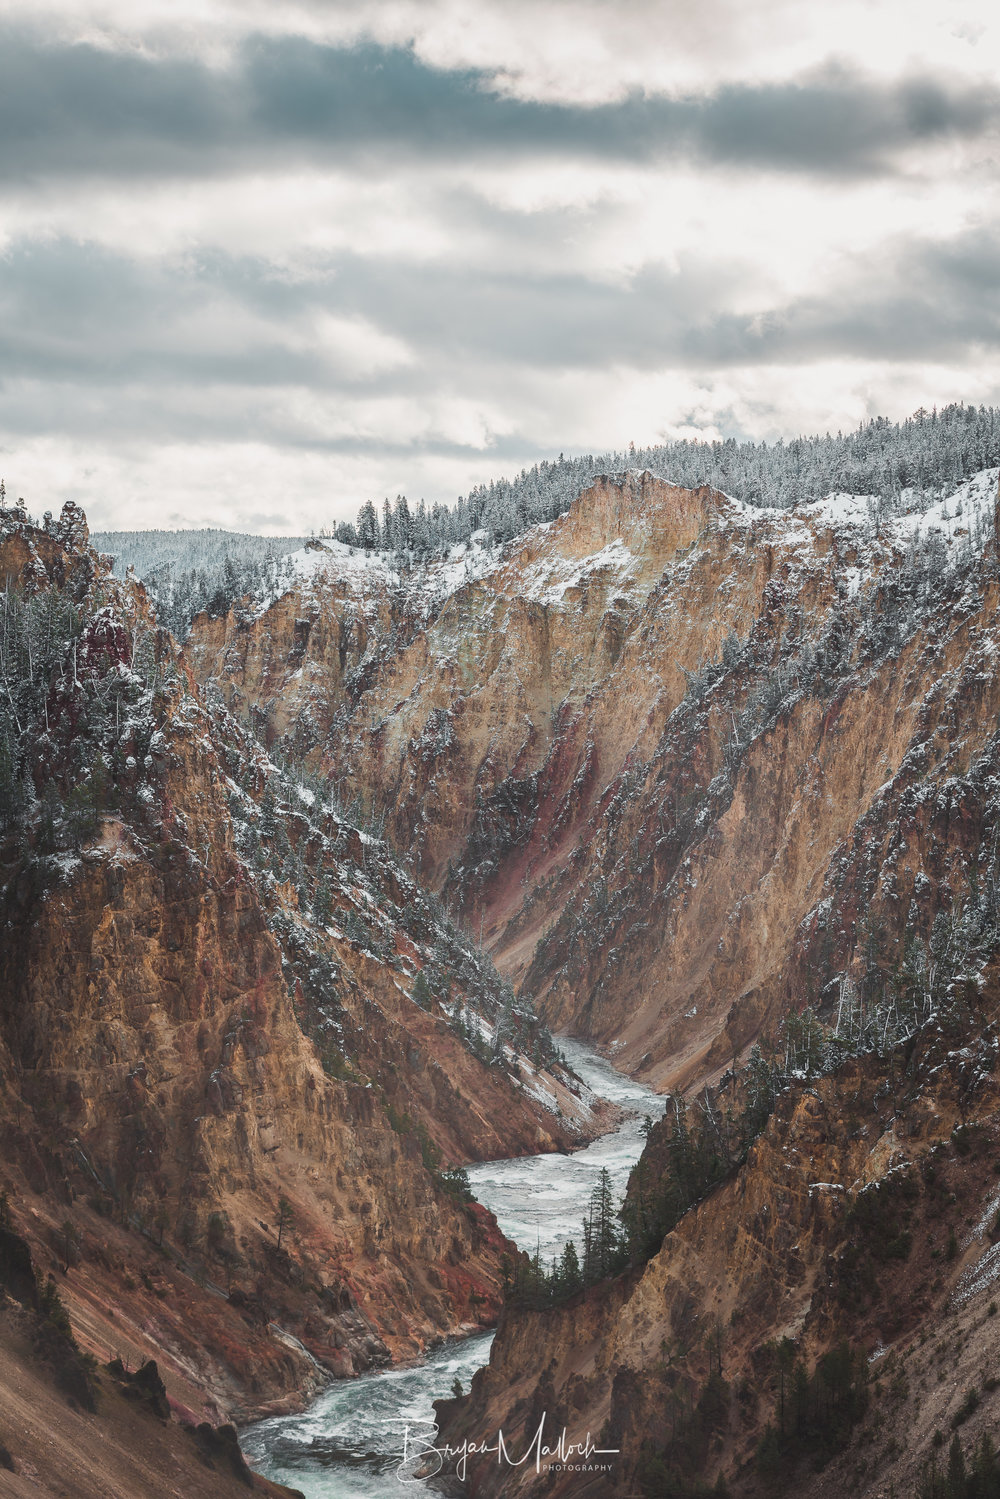 Millions of years to carve this canyon, a few moments to stop and enjoy it before succumbing to the cold.